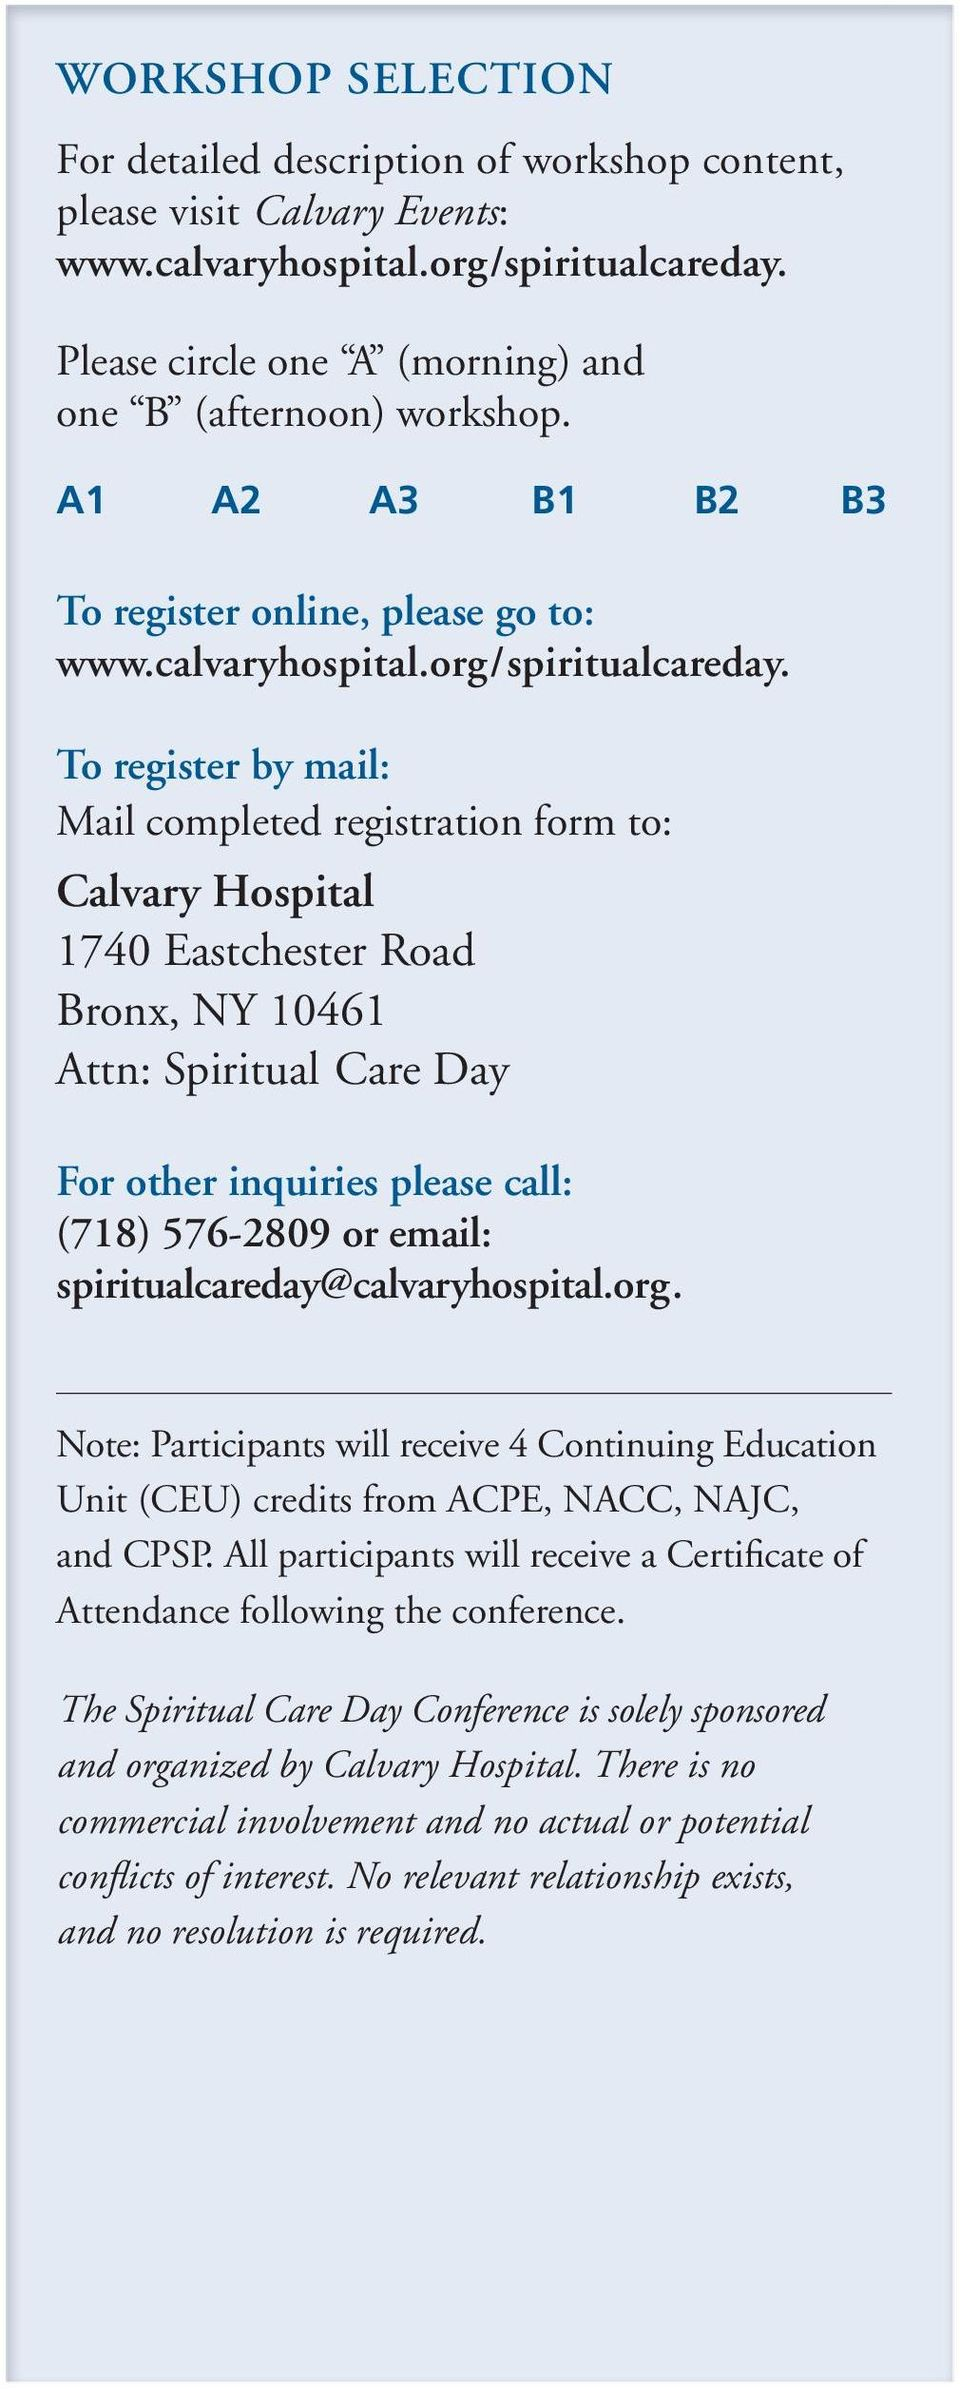 To register by mail: Mail completed registration form to: Calvary Hospital 1740 Eastchester Road Bronx, NY 10461 Attn: Spiritual Care Day For other inquiries please call: (718) 576-2809 or email: